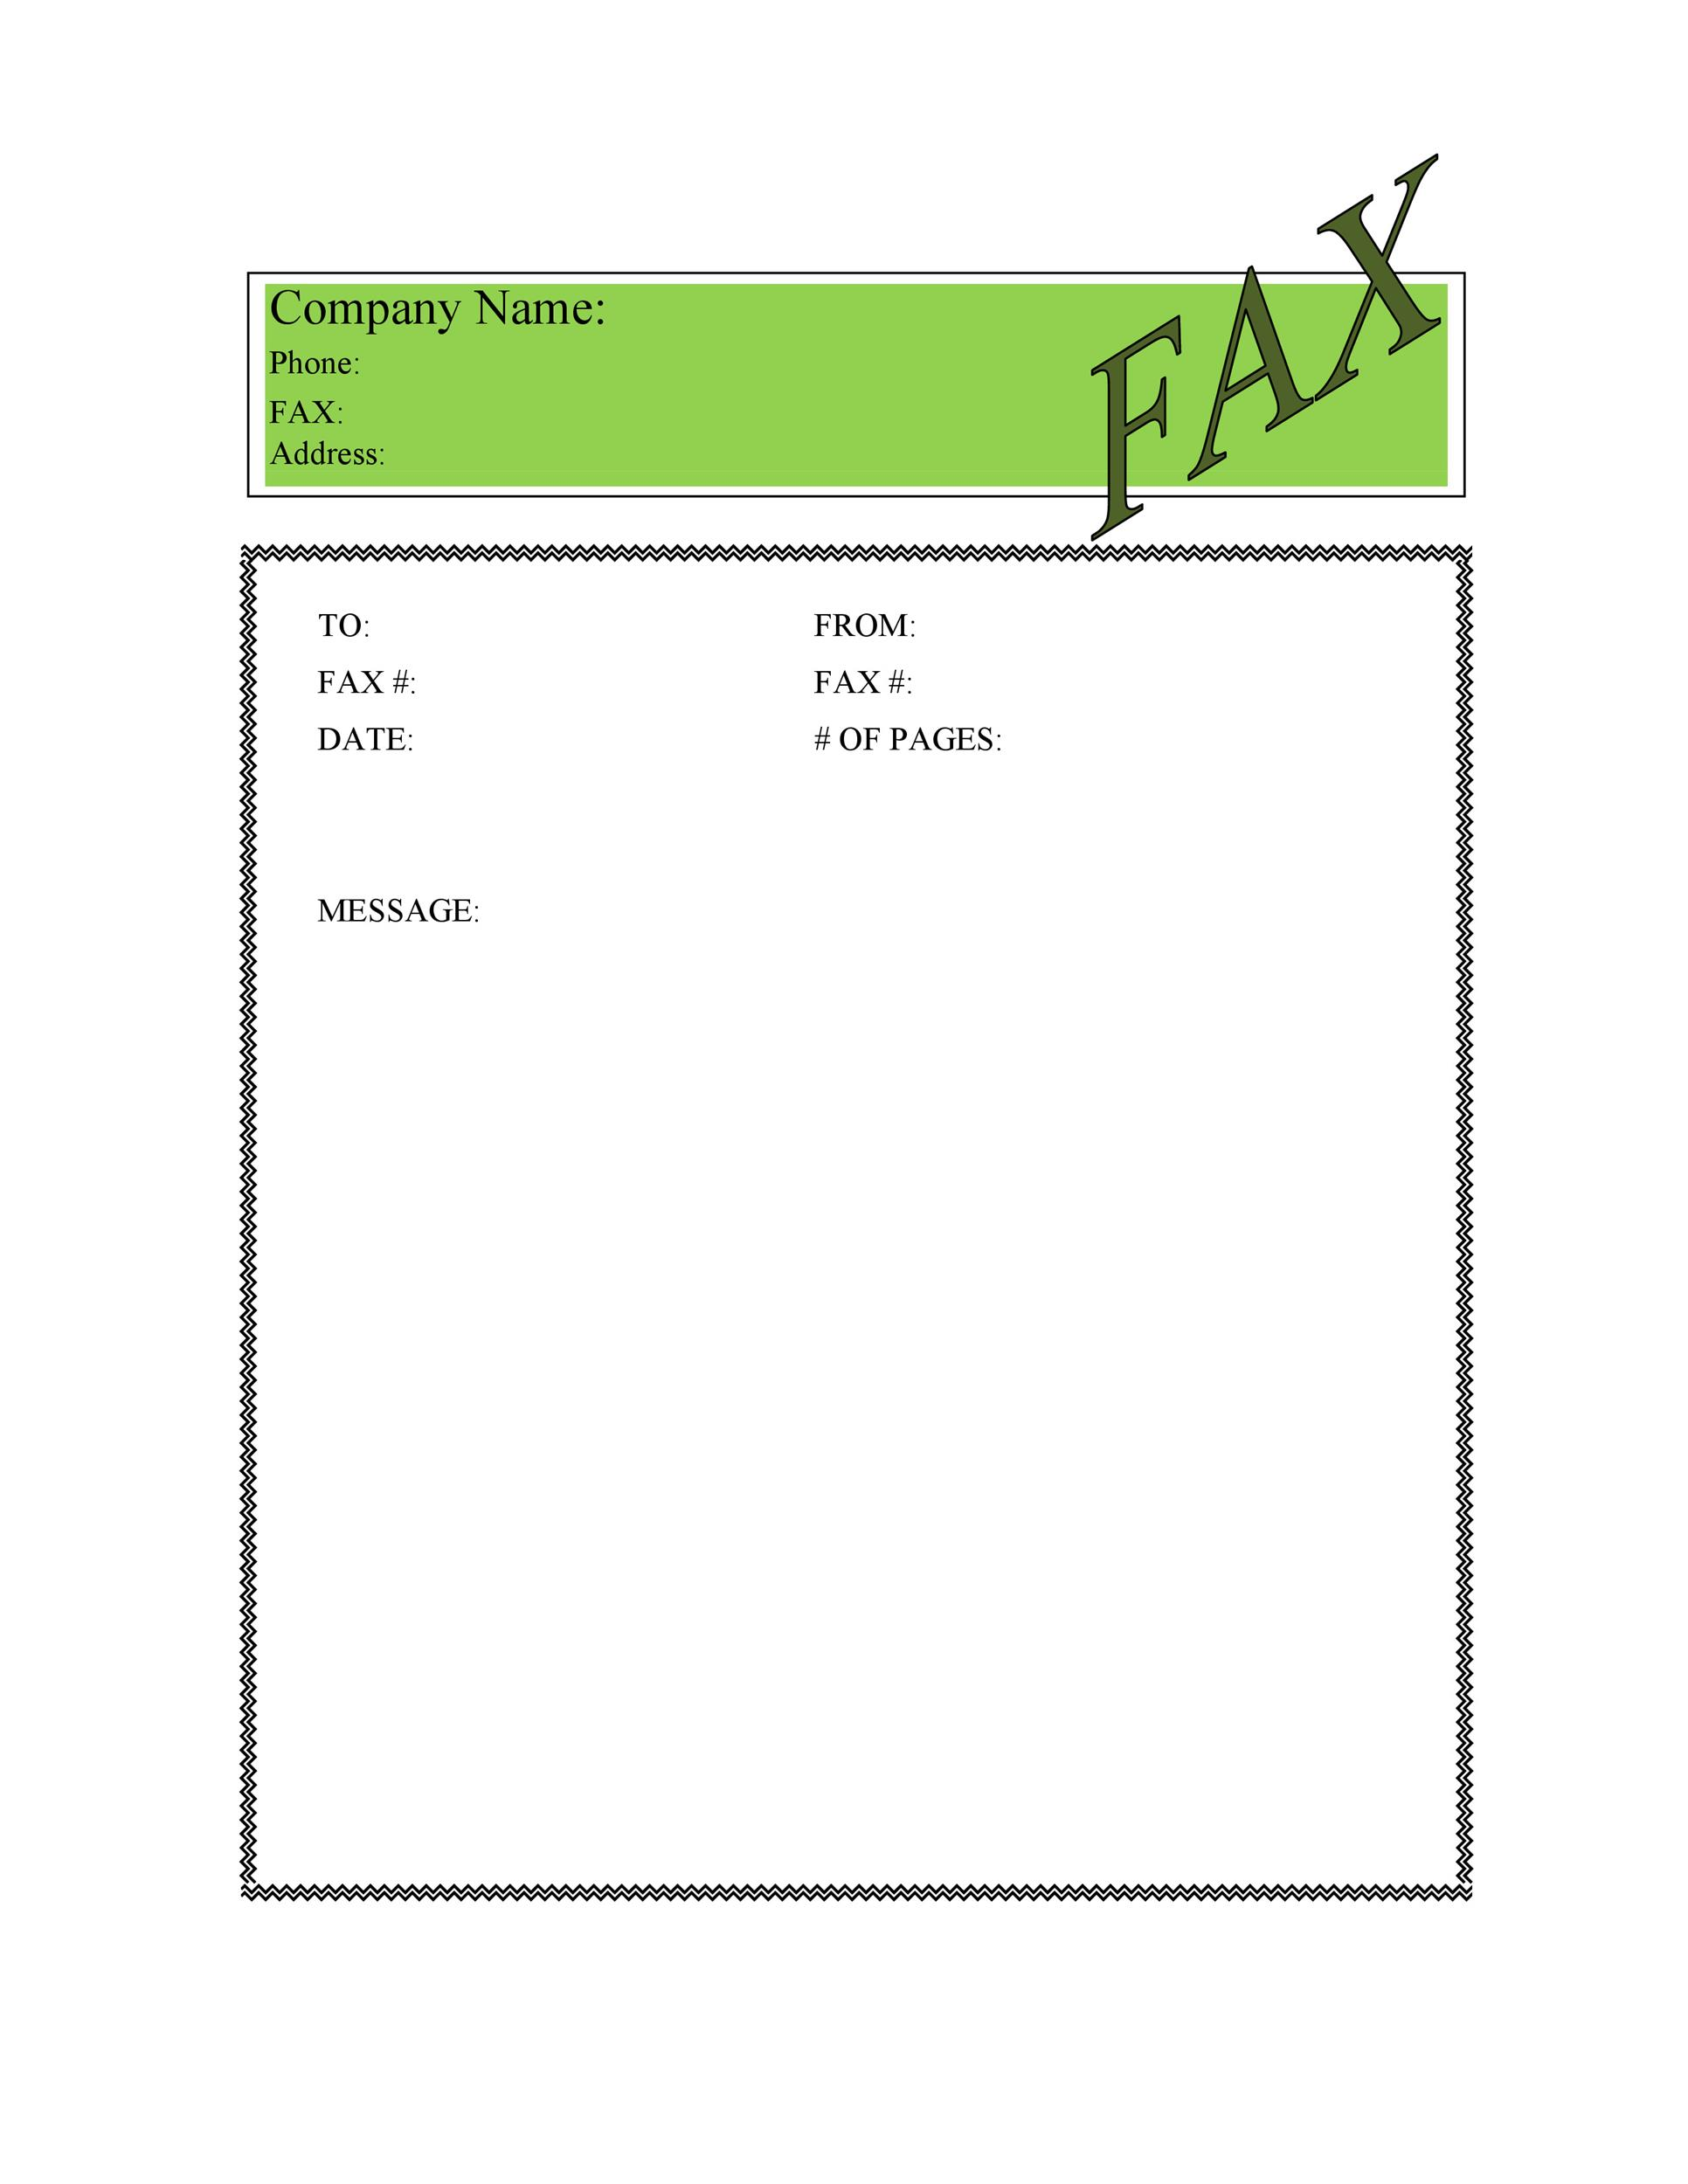 Free Fax Cover sheet Template 19